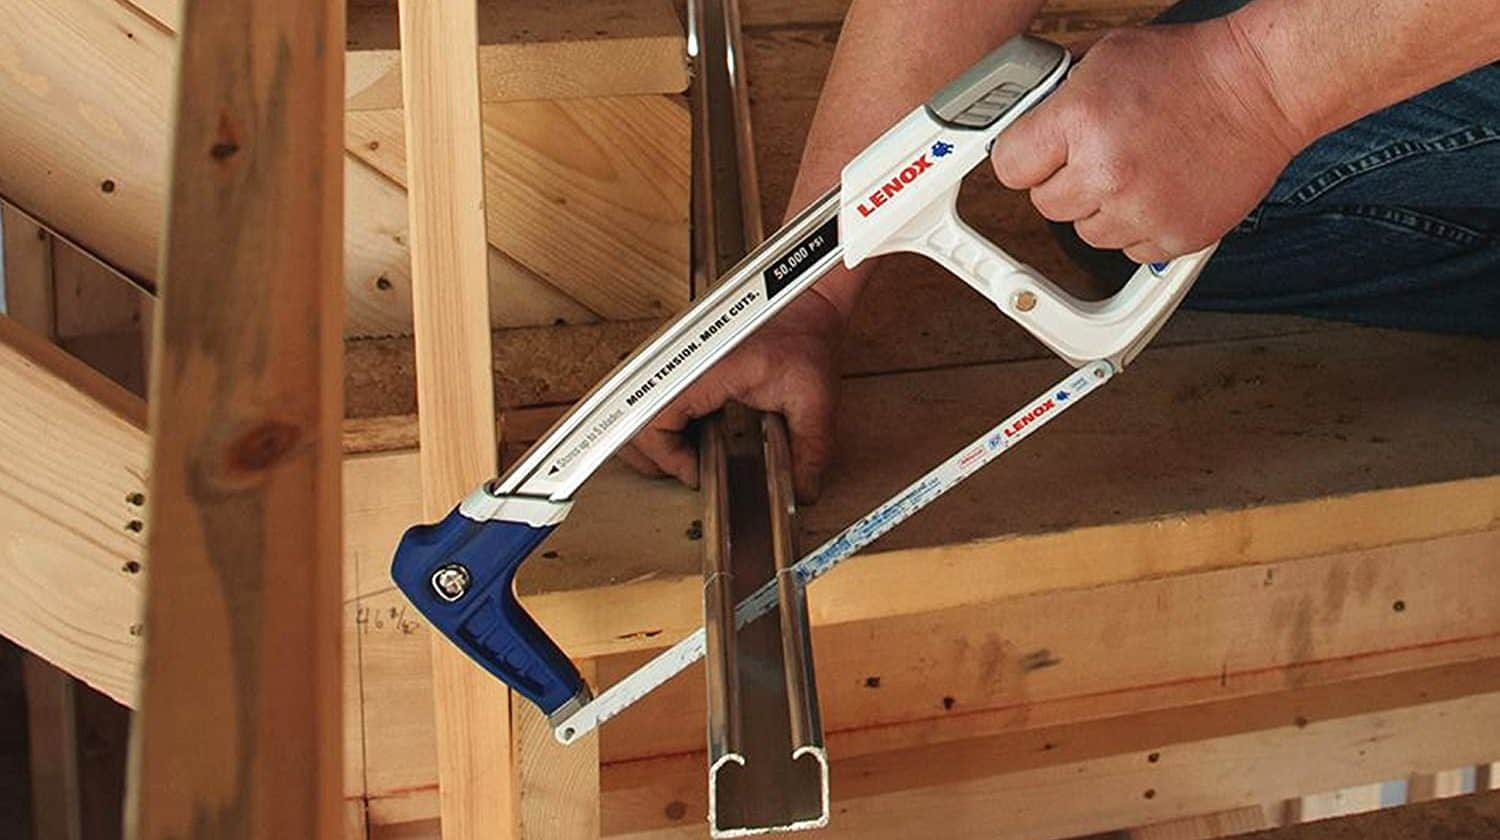 Best hacksaw for cutting wood, metal, PVC and stuff reviewed